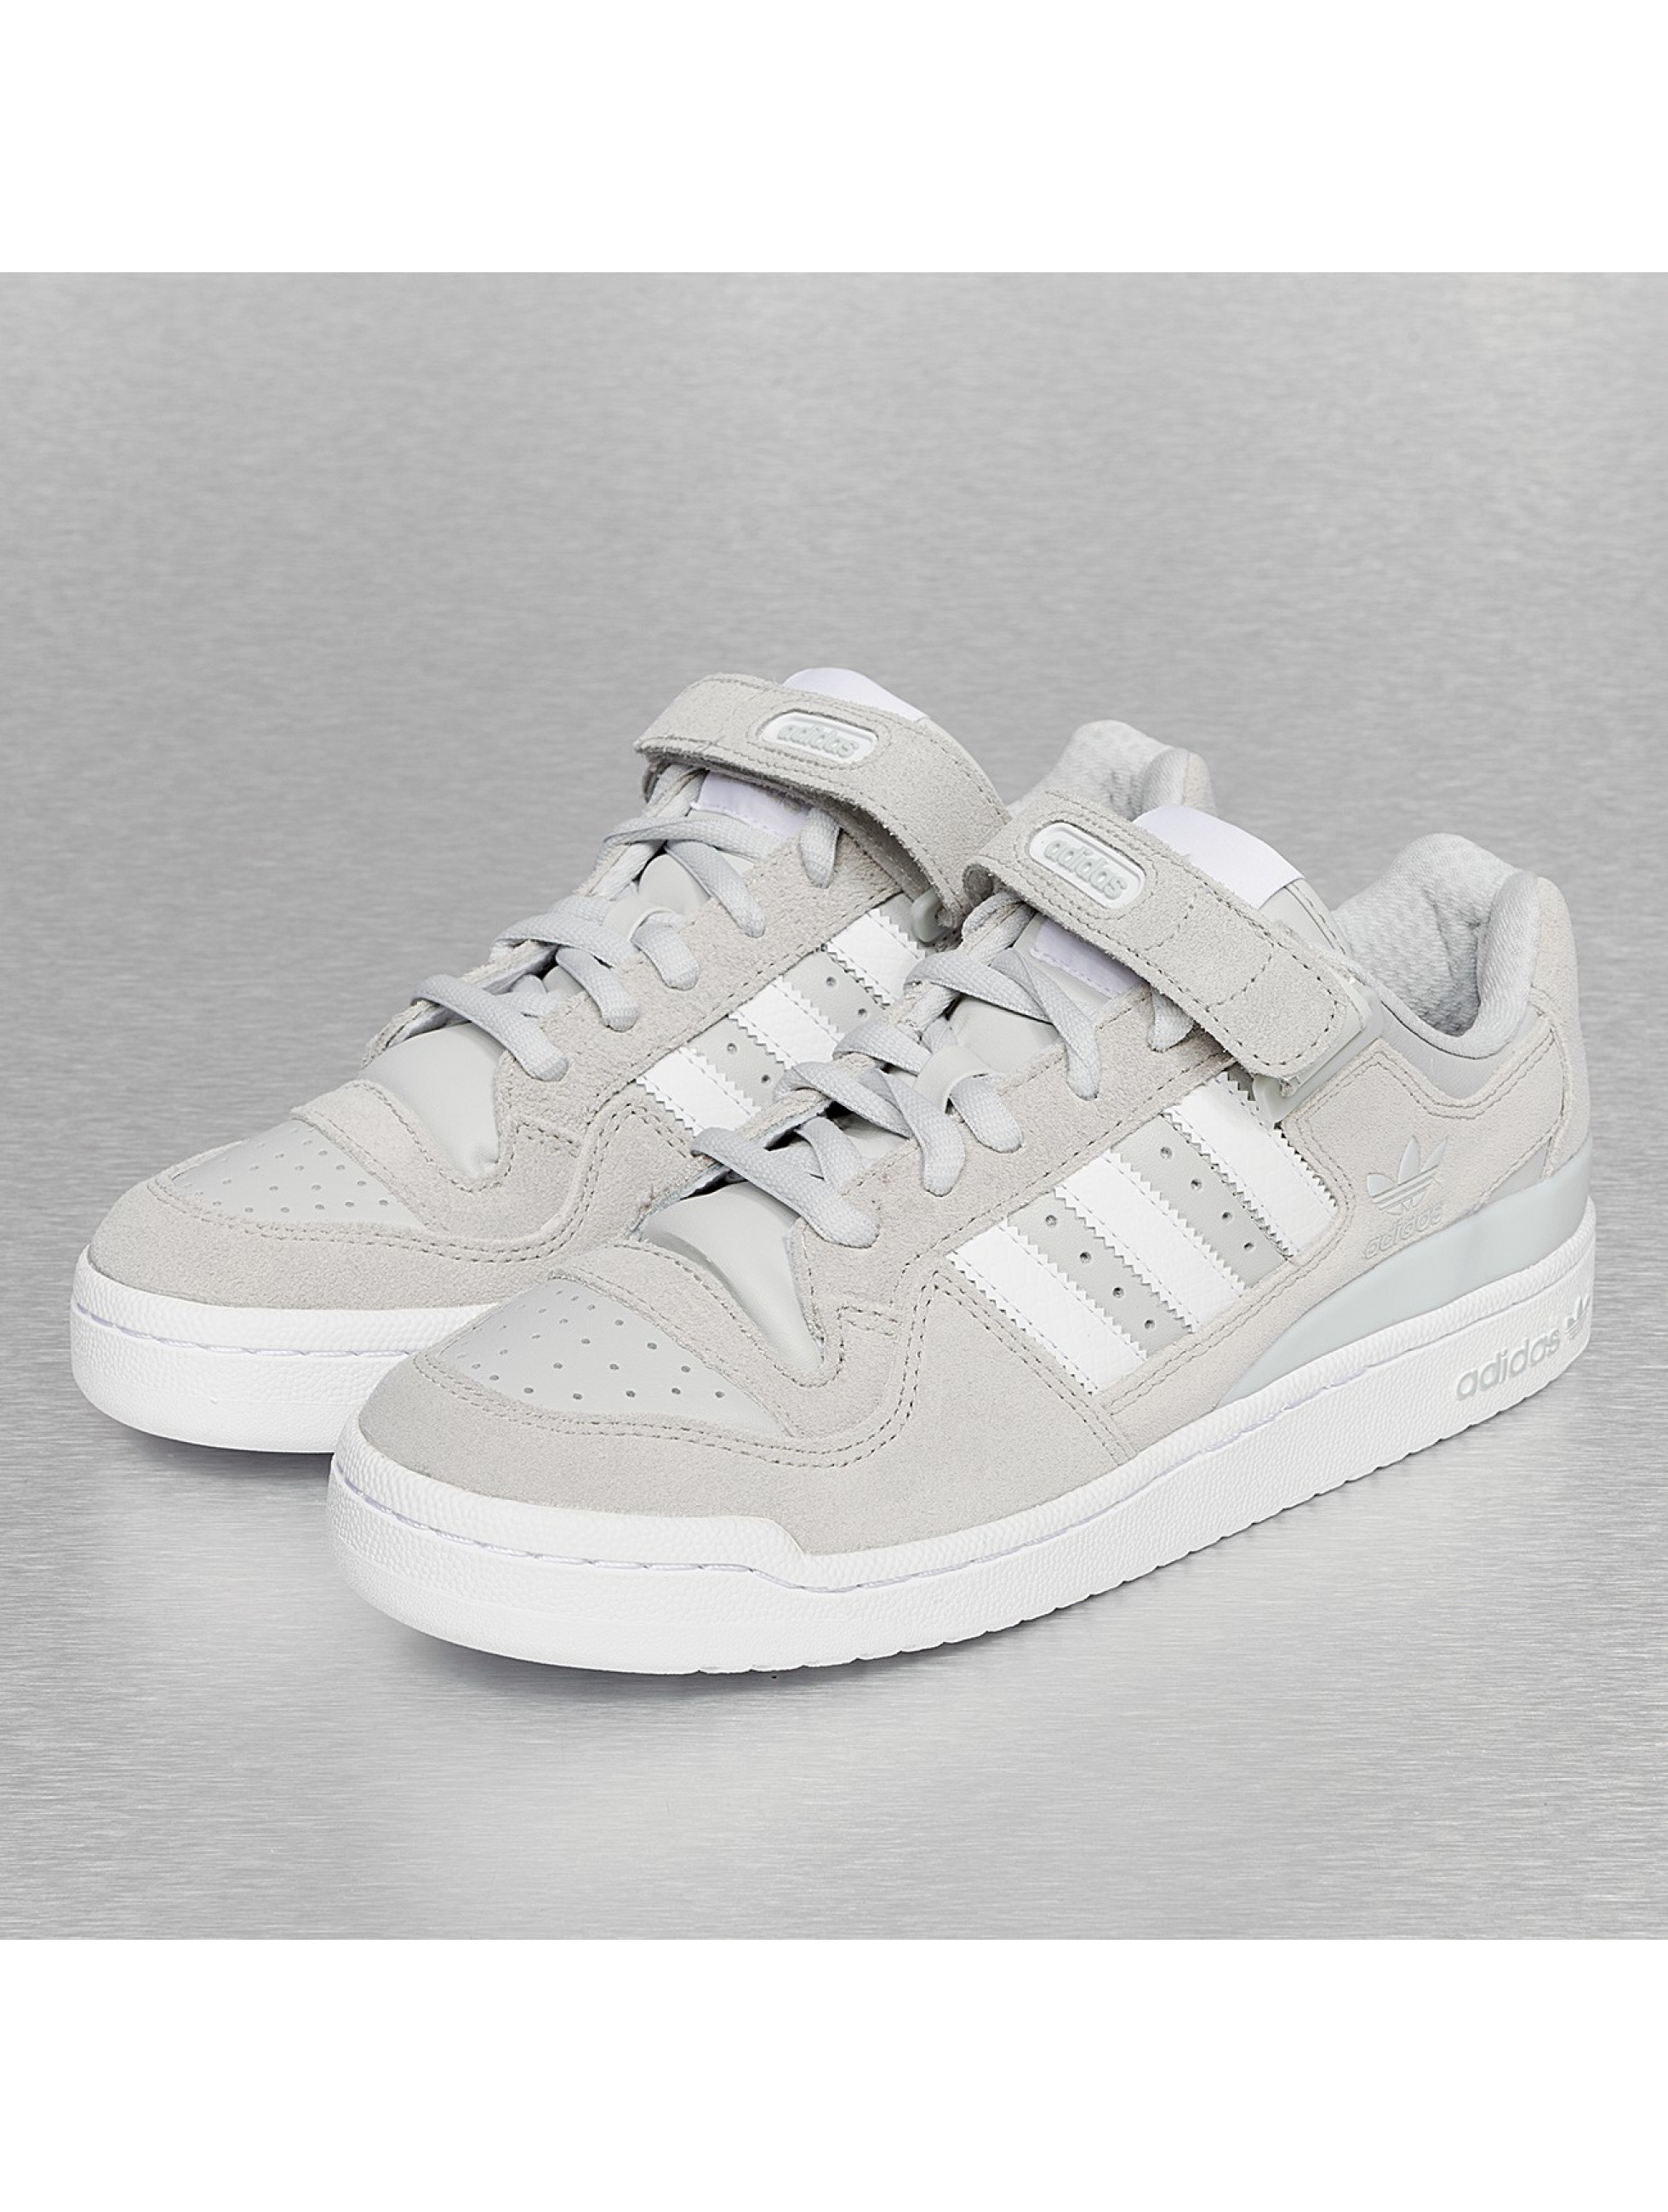 on sale 004b5 ee636 but can t decide if i cop em grey or all white